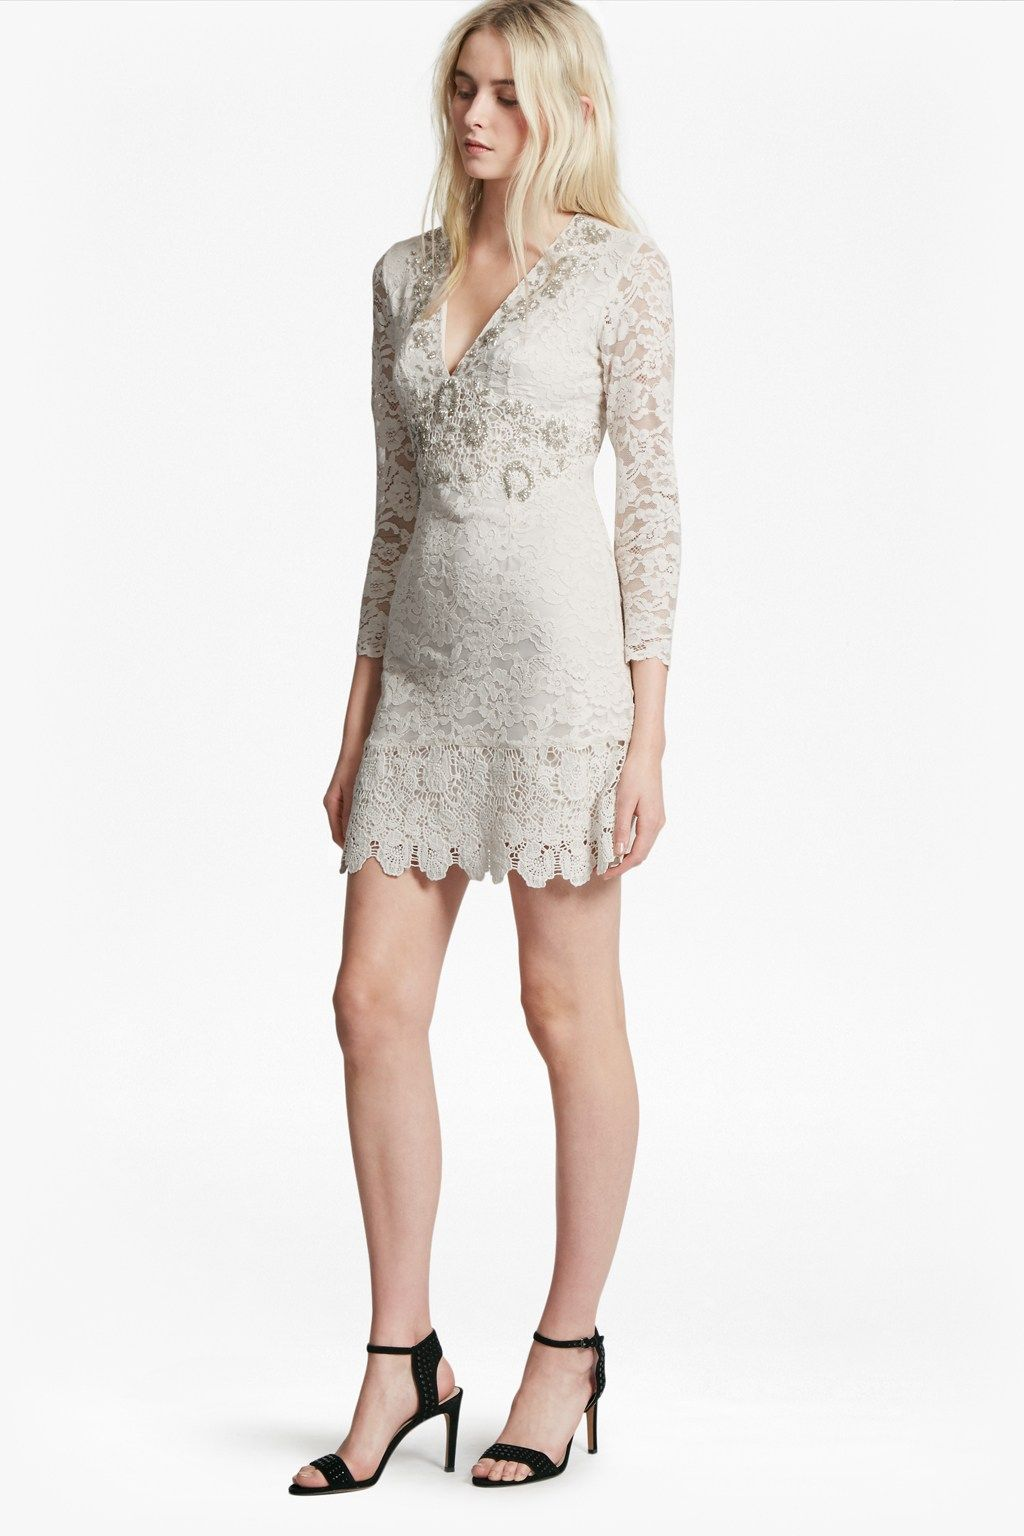 Emmie Lace Embellished Dress | SALE | French Connection Canada ...